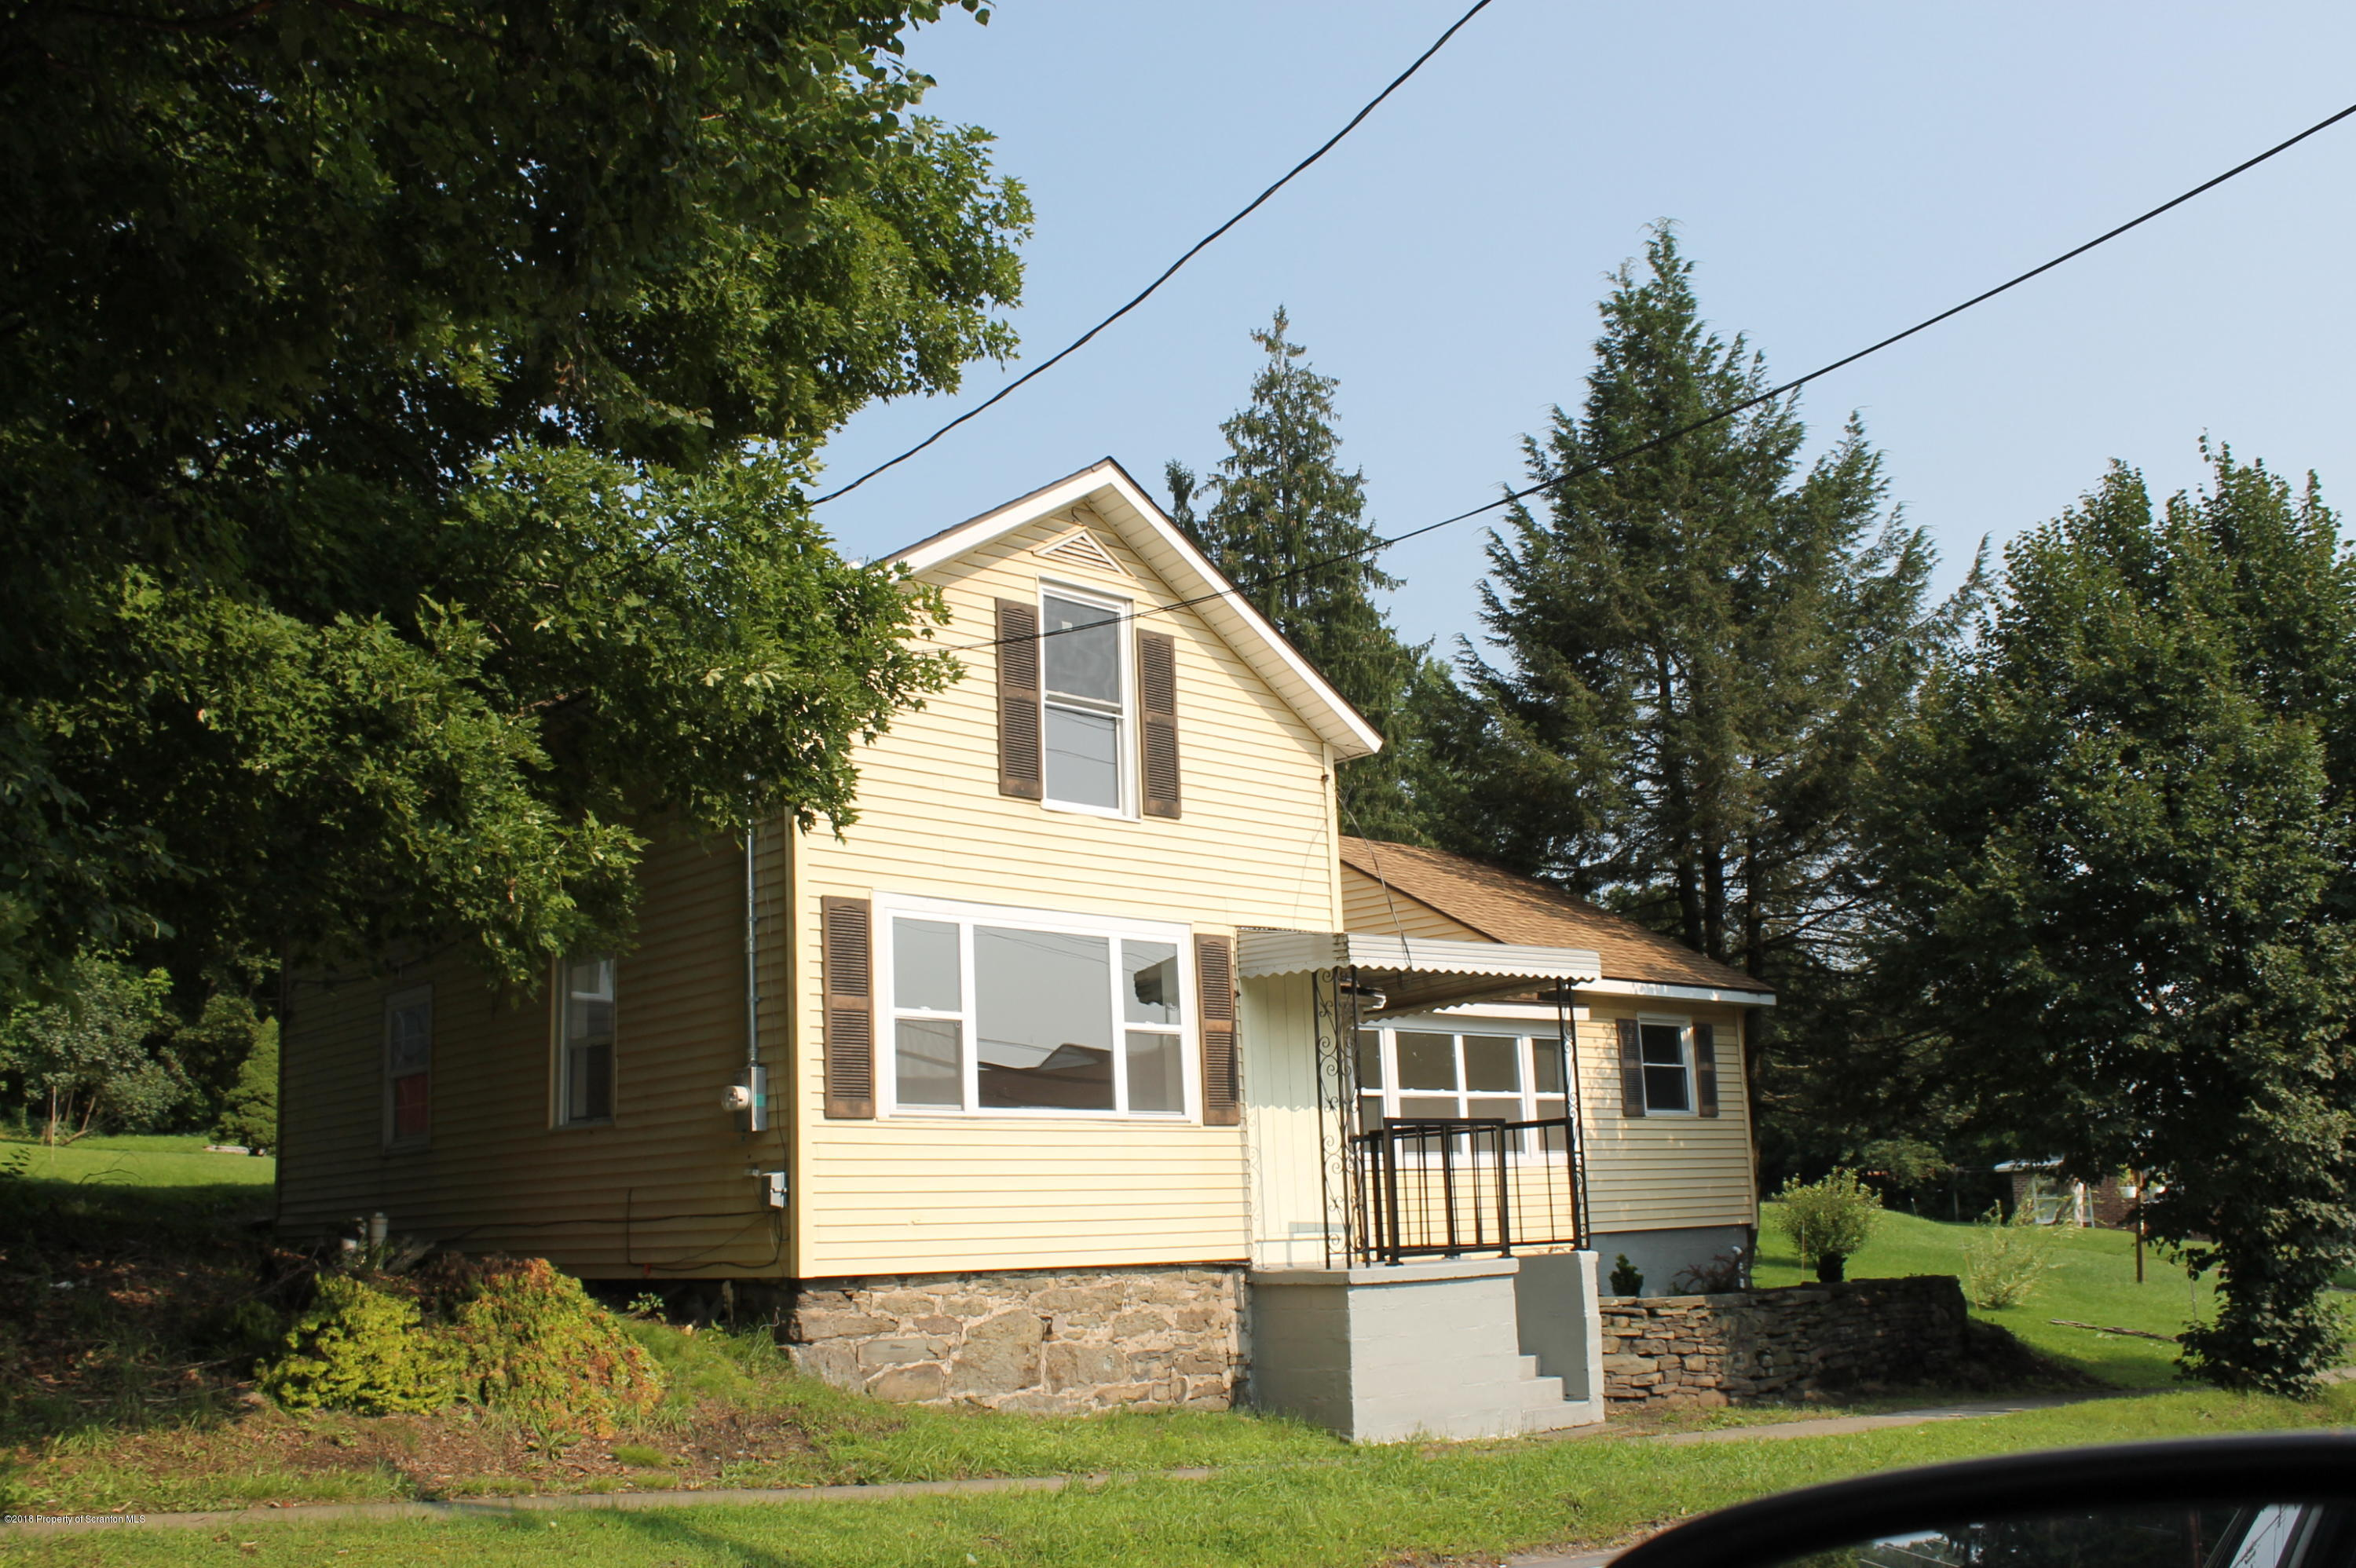 129 Market St, Moscow, Pennsylvania 18444, 4 Bedrooms Bedrooms, 7 Rooms Rooms,1 BathroomBathrooms,Single Family,For Sale,Market,20-1245